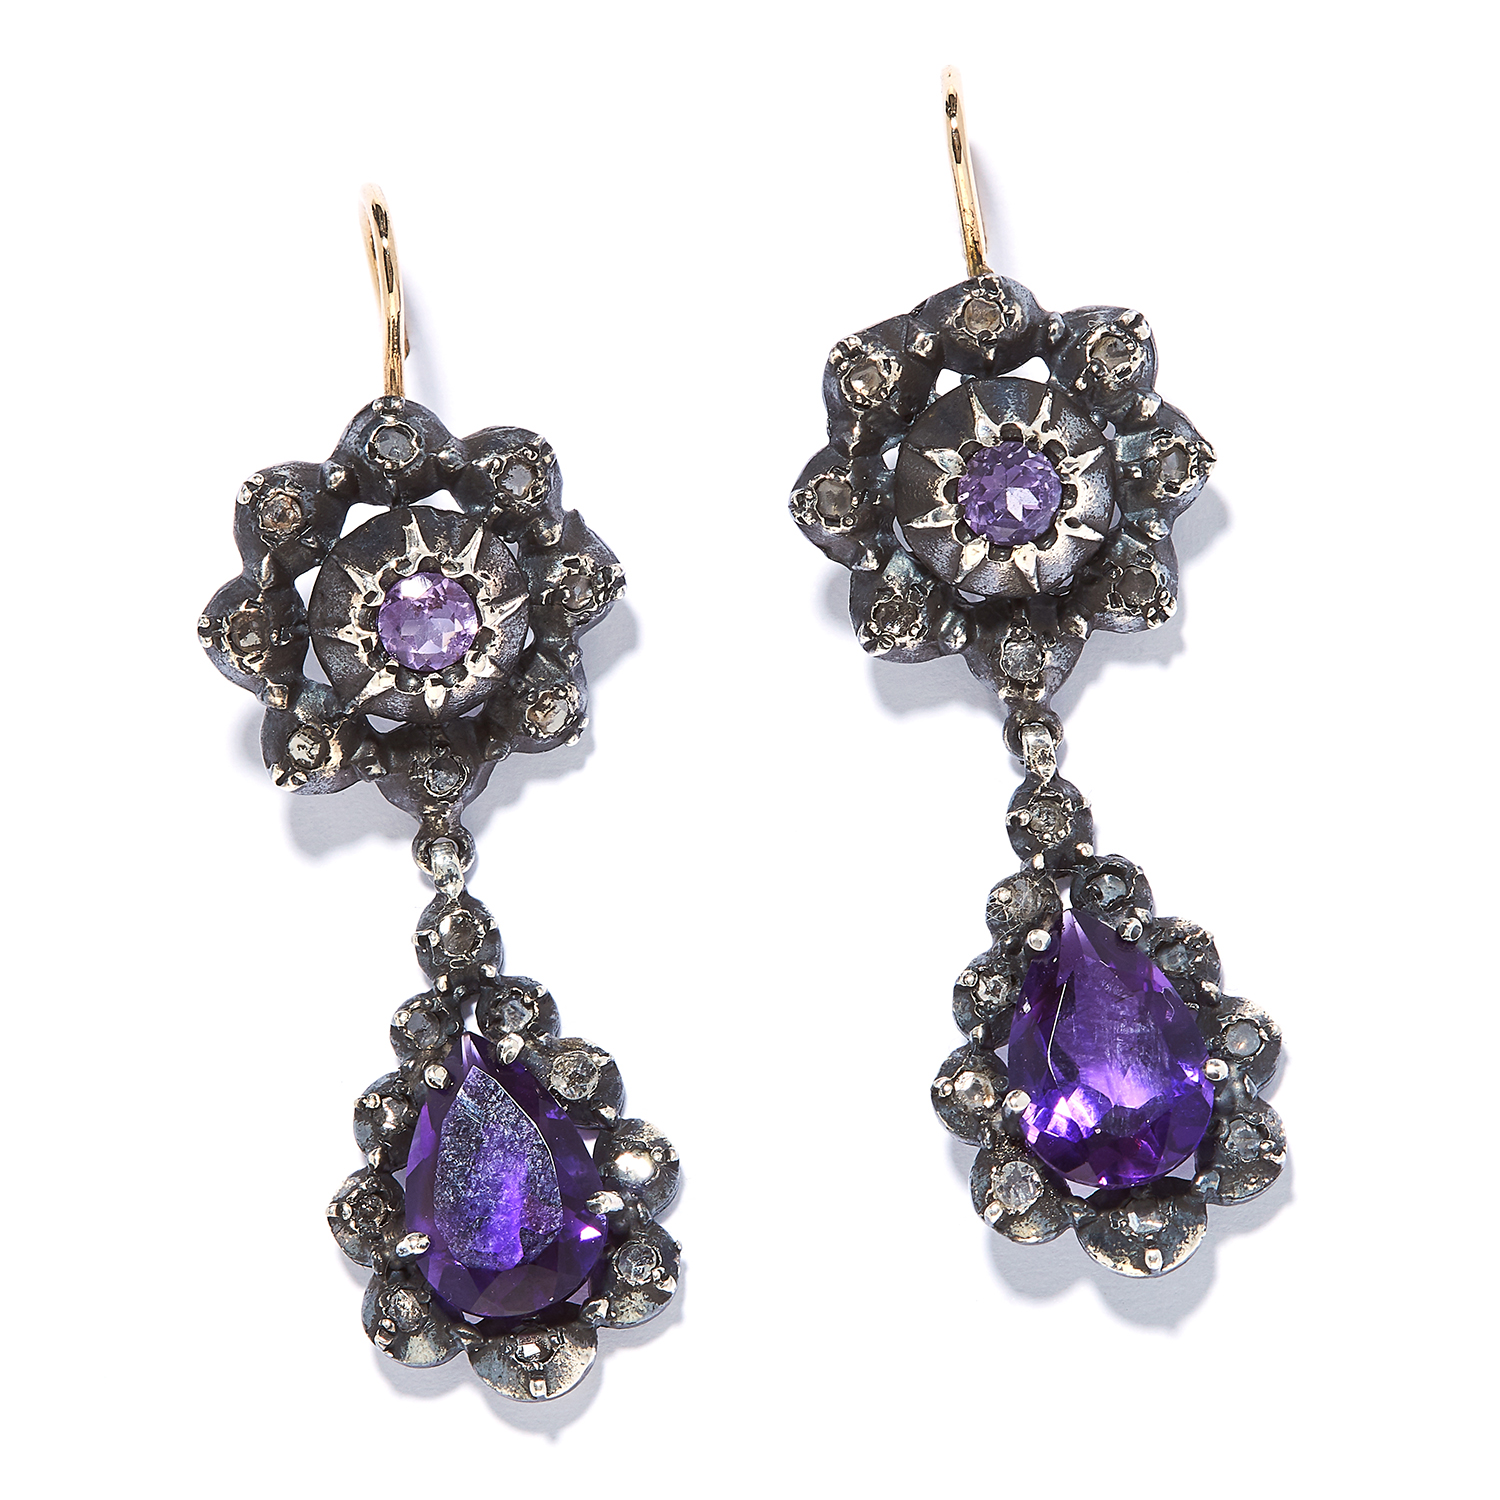 AMETHYST AND DIAMOND EARRINGS the articulated bodies with amethysts encircled by rose cut